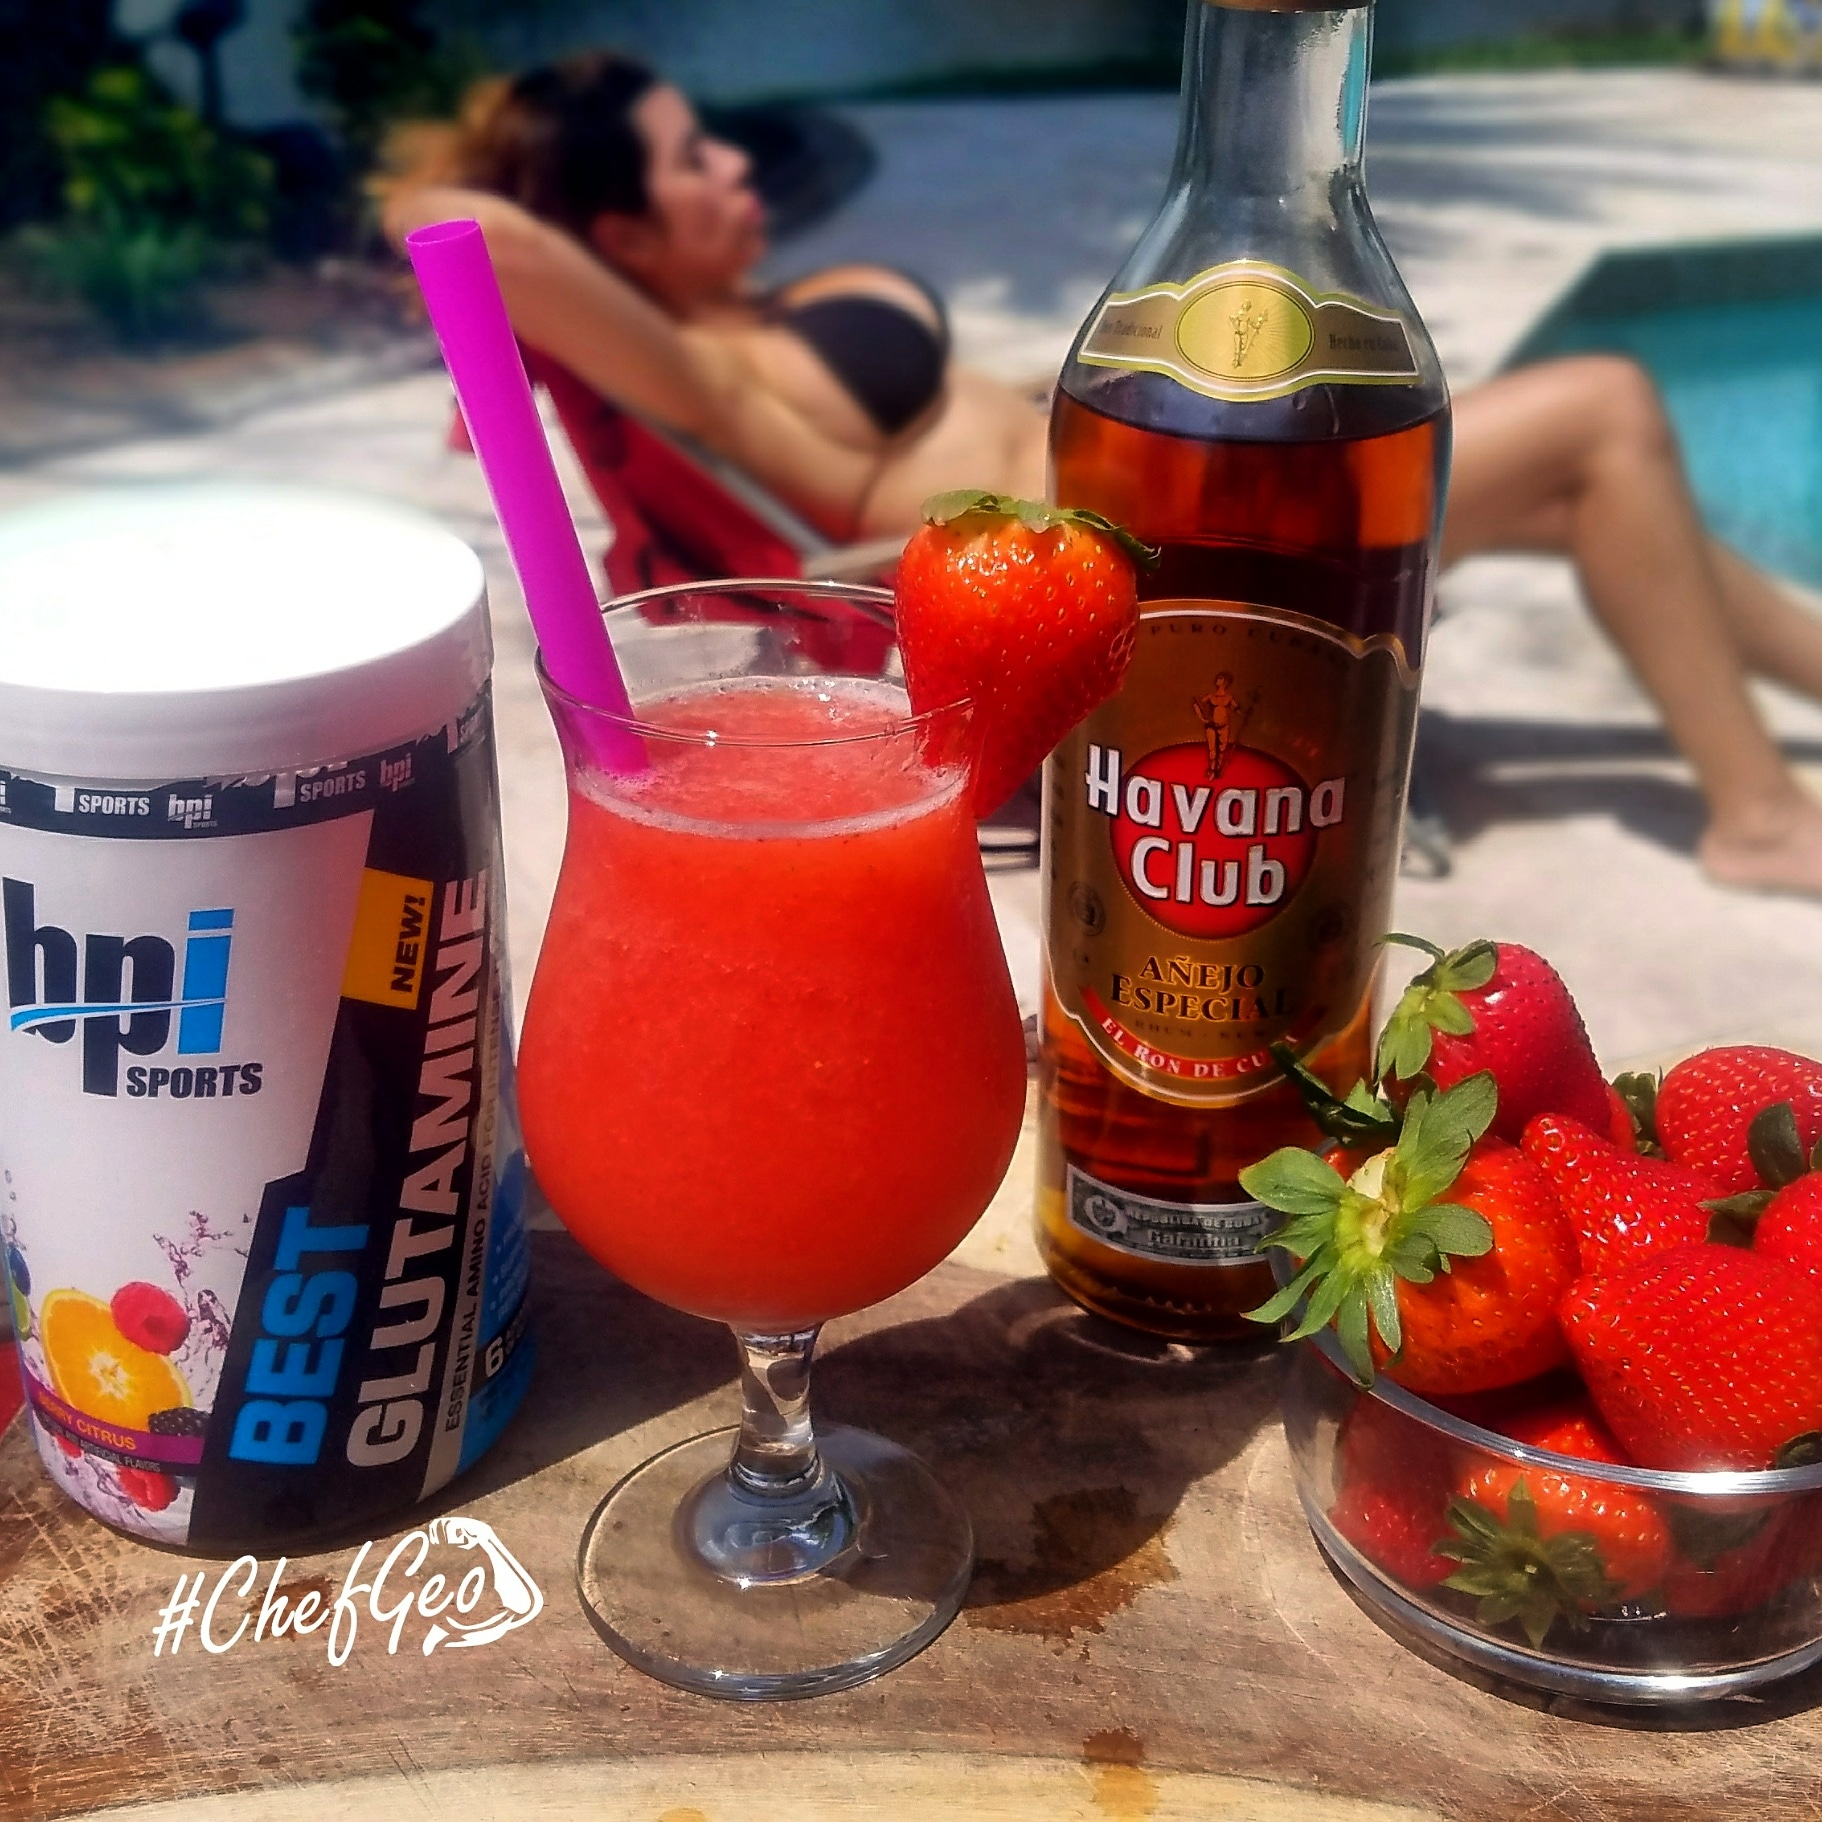 "FROZEN SUGAR-FREE STRAWBERRY DAIQUIRI RECIPE<span class=""rating-result after_title mr-filter rating-result-1221"" >	<span class=""mr-star-rating"">			    <i class=""fa fa-star mr-star-full""></i>	    	    <i class=""fa fa-star mr-star-full""></i>	    	    <i class=""fa fa-star mr-star-full""></i>	    	    <i class=""fa fa-star mr-star-full""></i>	    	    <i class=""fa fa-star-half-o mr-star-half""></i>	    </span><span class=""star-result"">	4.5/5</span>			<span class=""count"">				(2)			</span>			</span>"